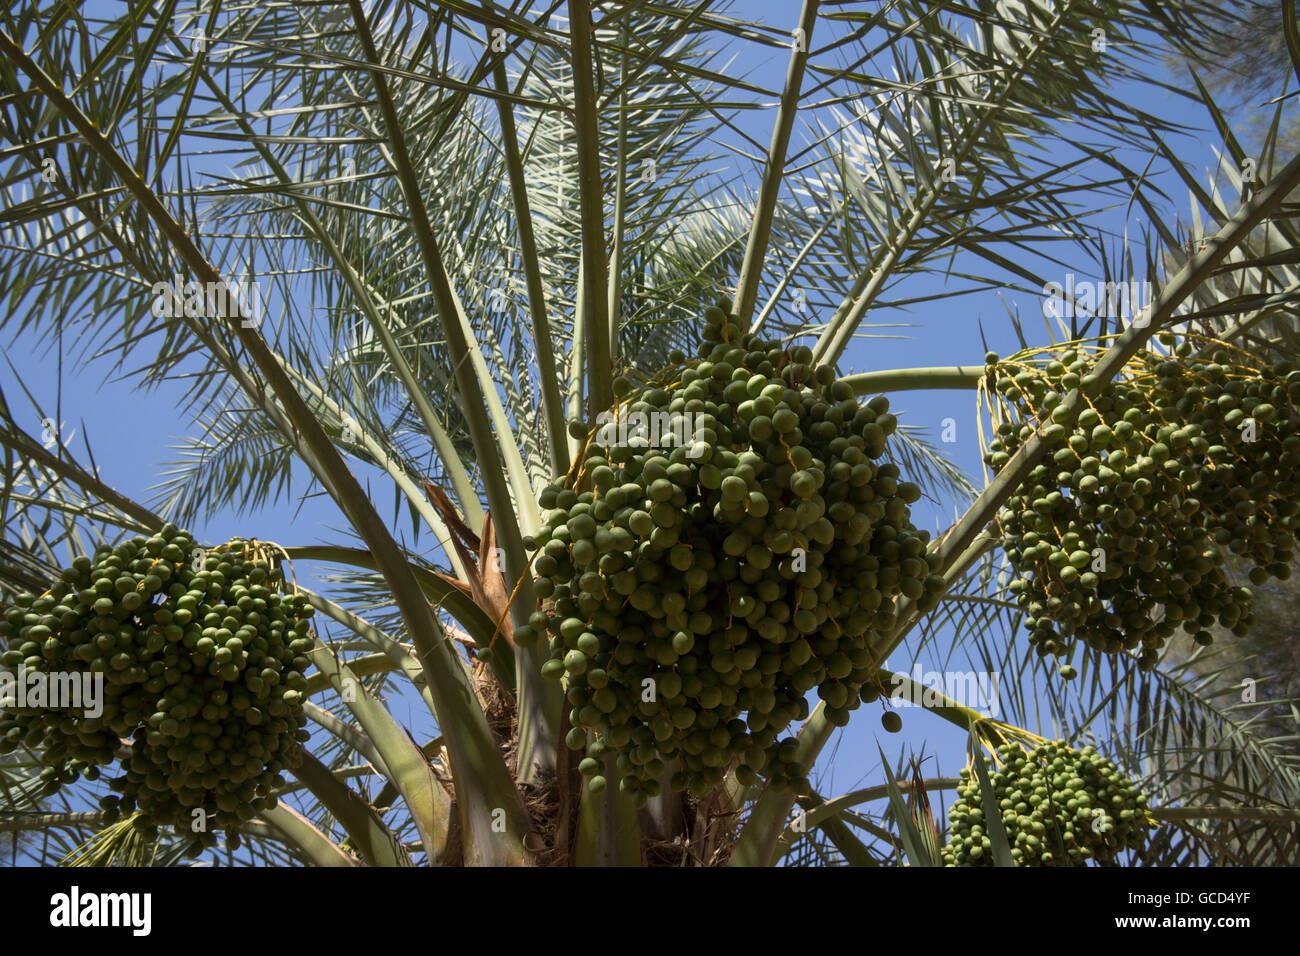 Bunches of dates maturing on a date palm - Stock Image